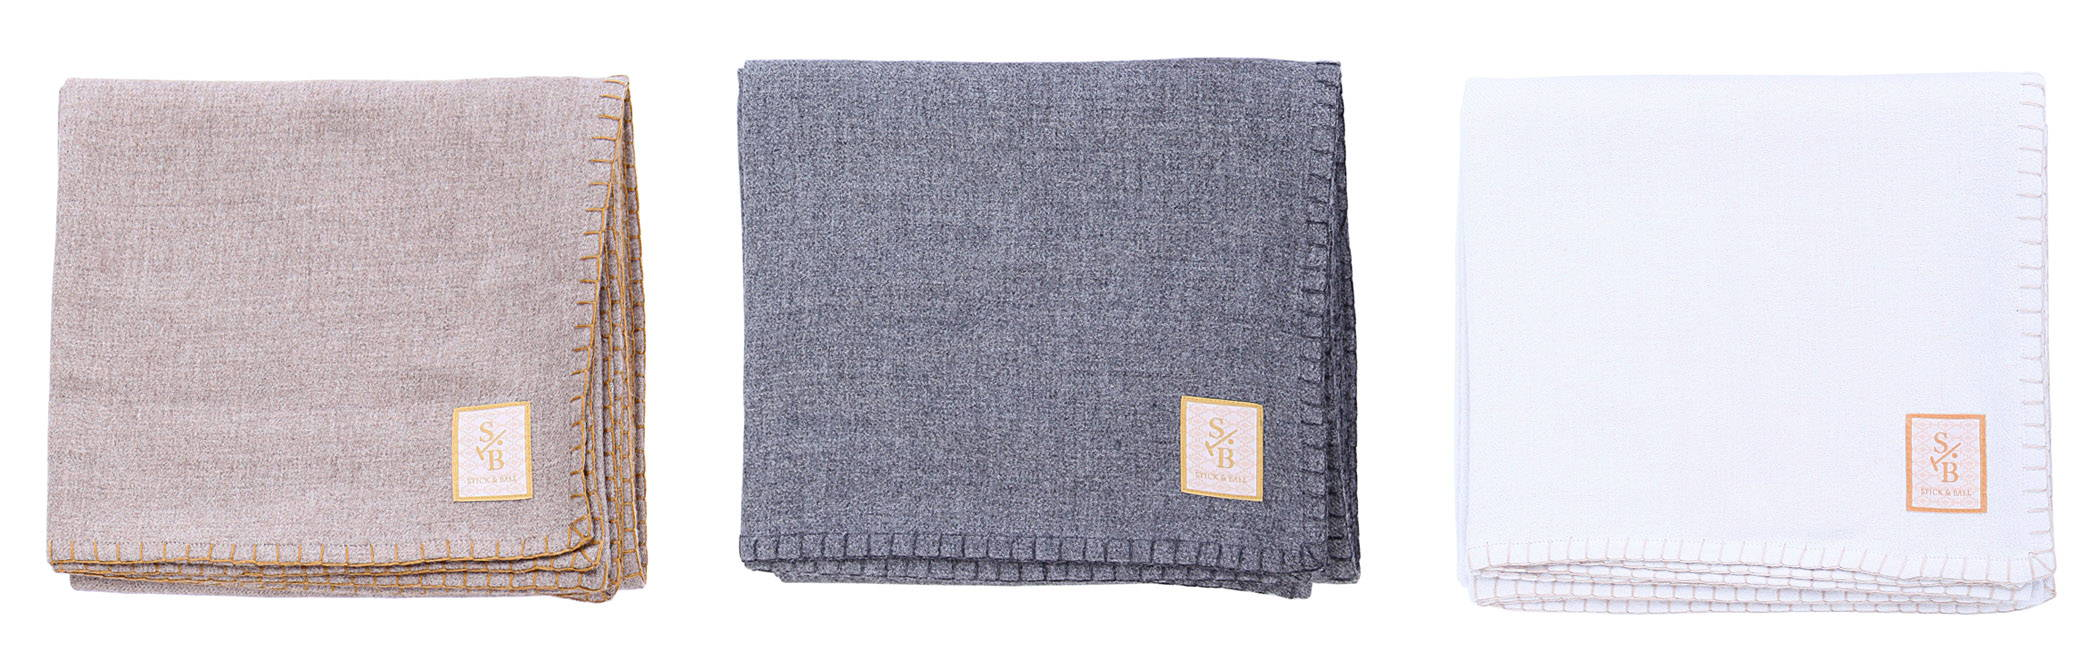 loomed & hand-stitched Solid color alpaca throw blankets in taupe, charcoal and winter white - Stick & Ball